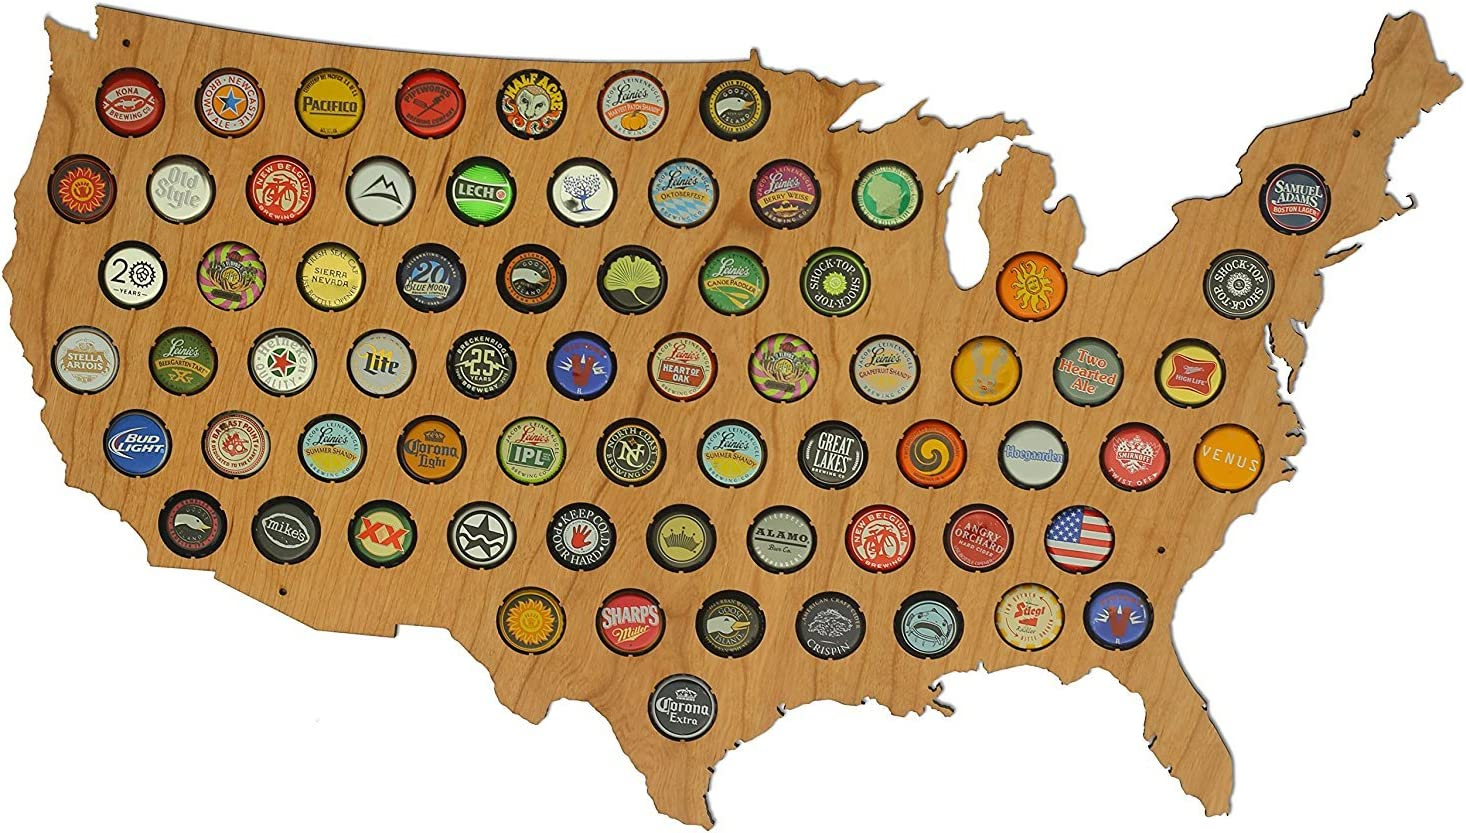 USA Indianapolis Mall Beer Cap 2021new shipping free Map Cherry - Glossy Skylin Wood Holder Bottle